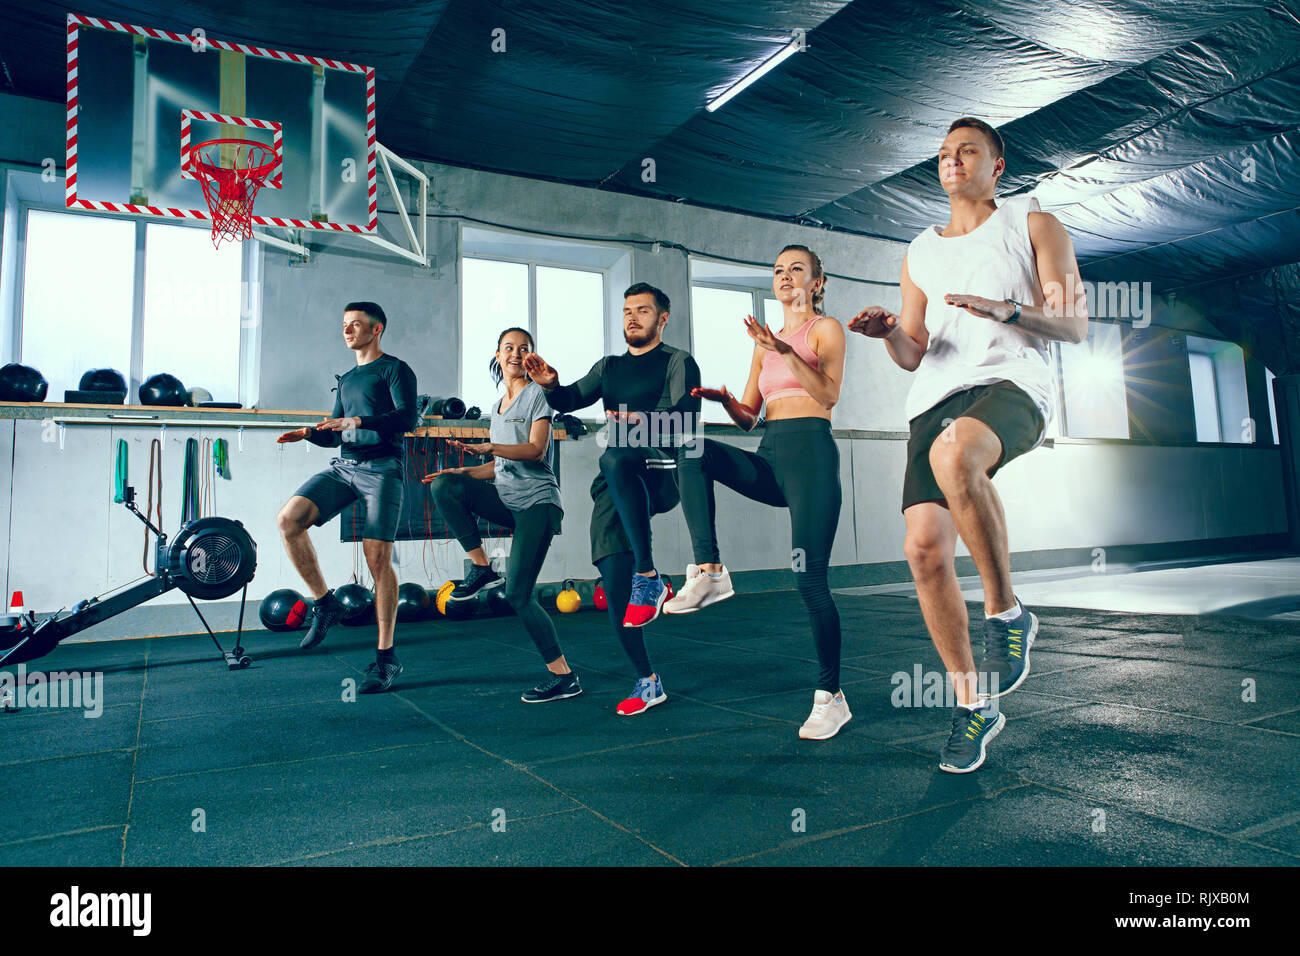 Shot of young men and women at the gym. Functional fitness workout. The group of people during training session. Fit athletic models. Healthy lifestyl - Stock Image